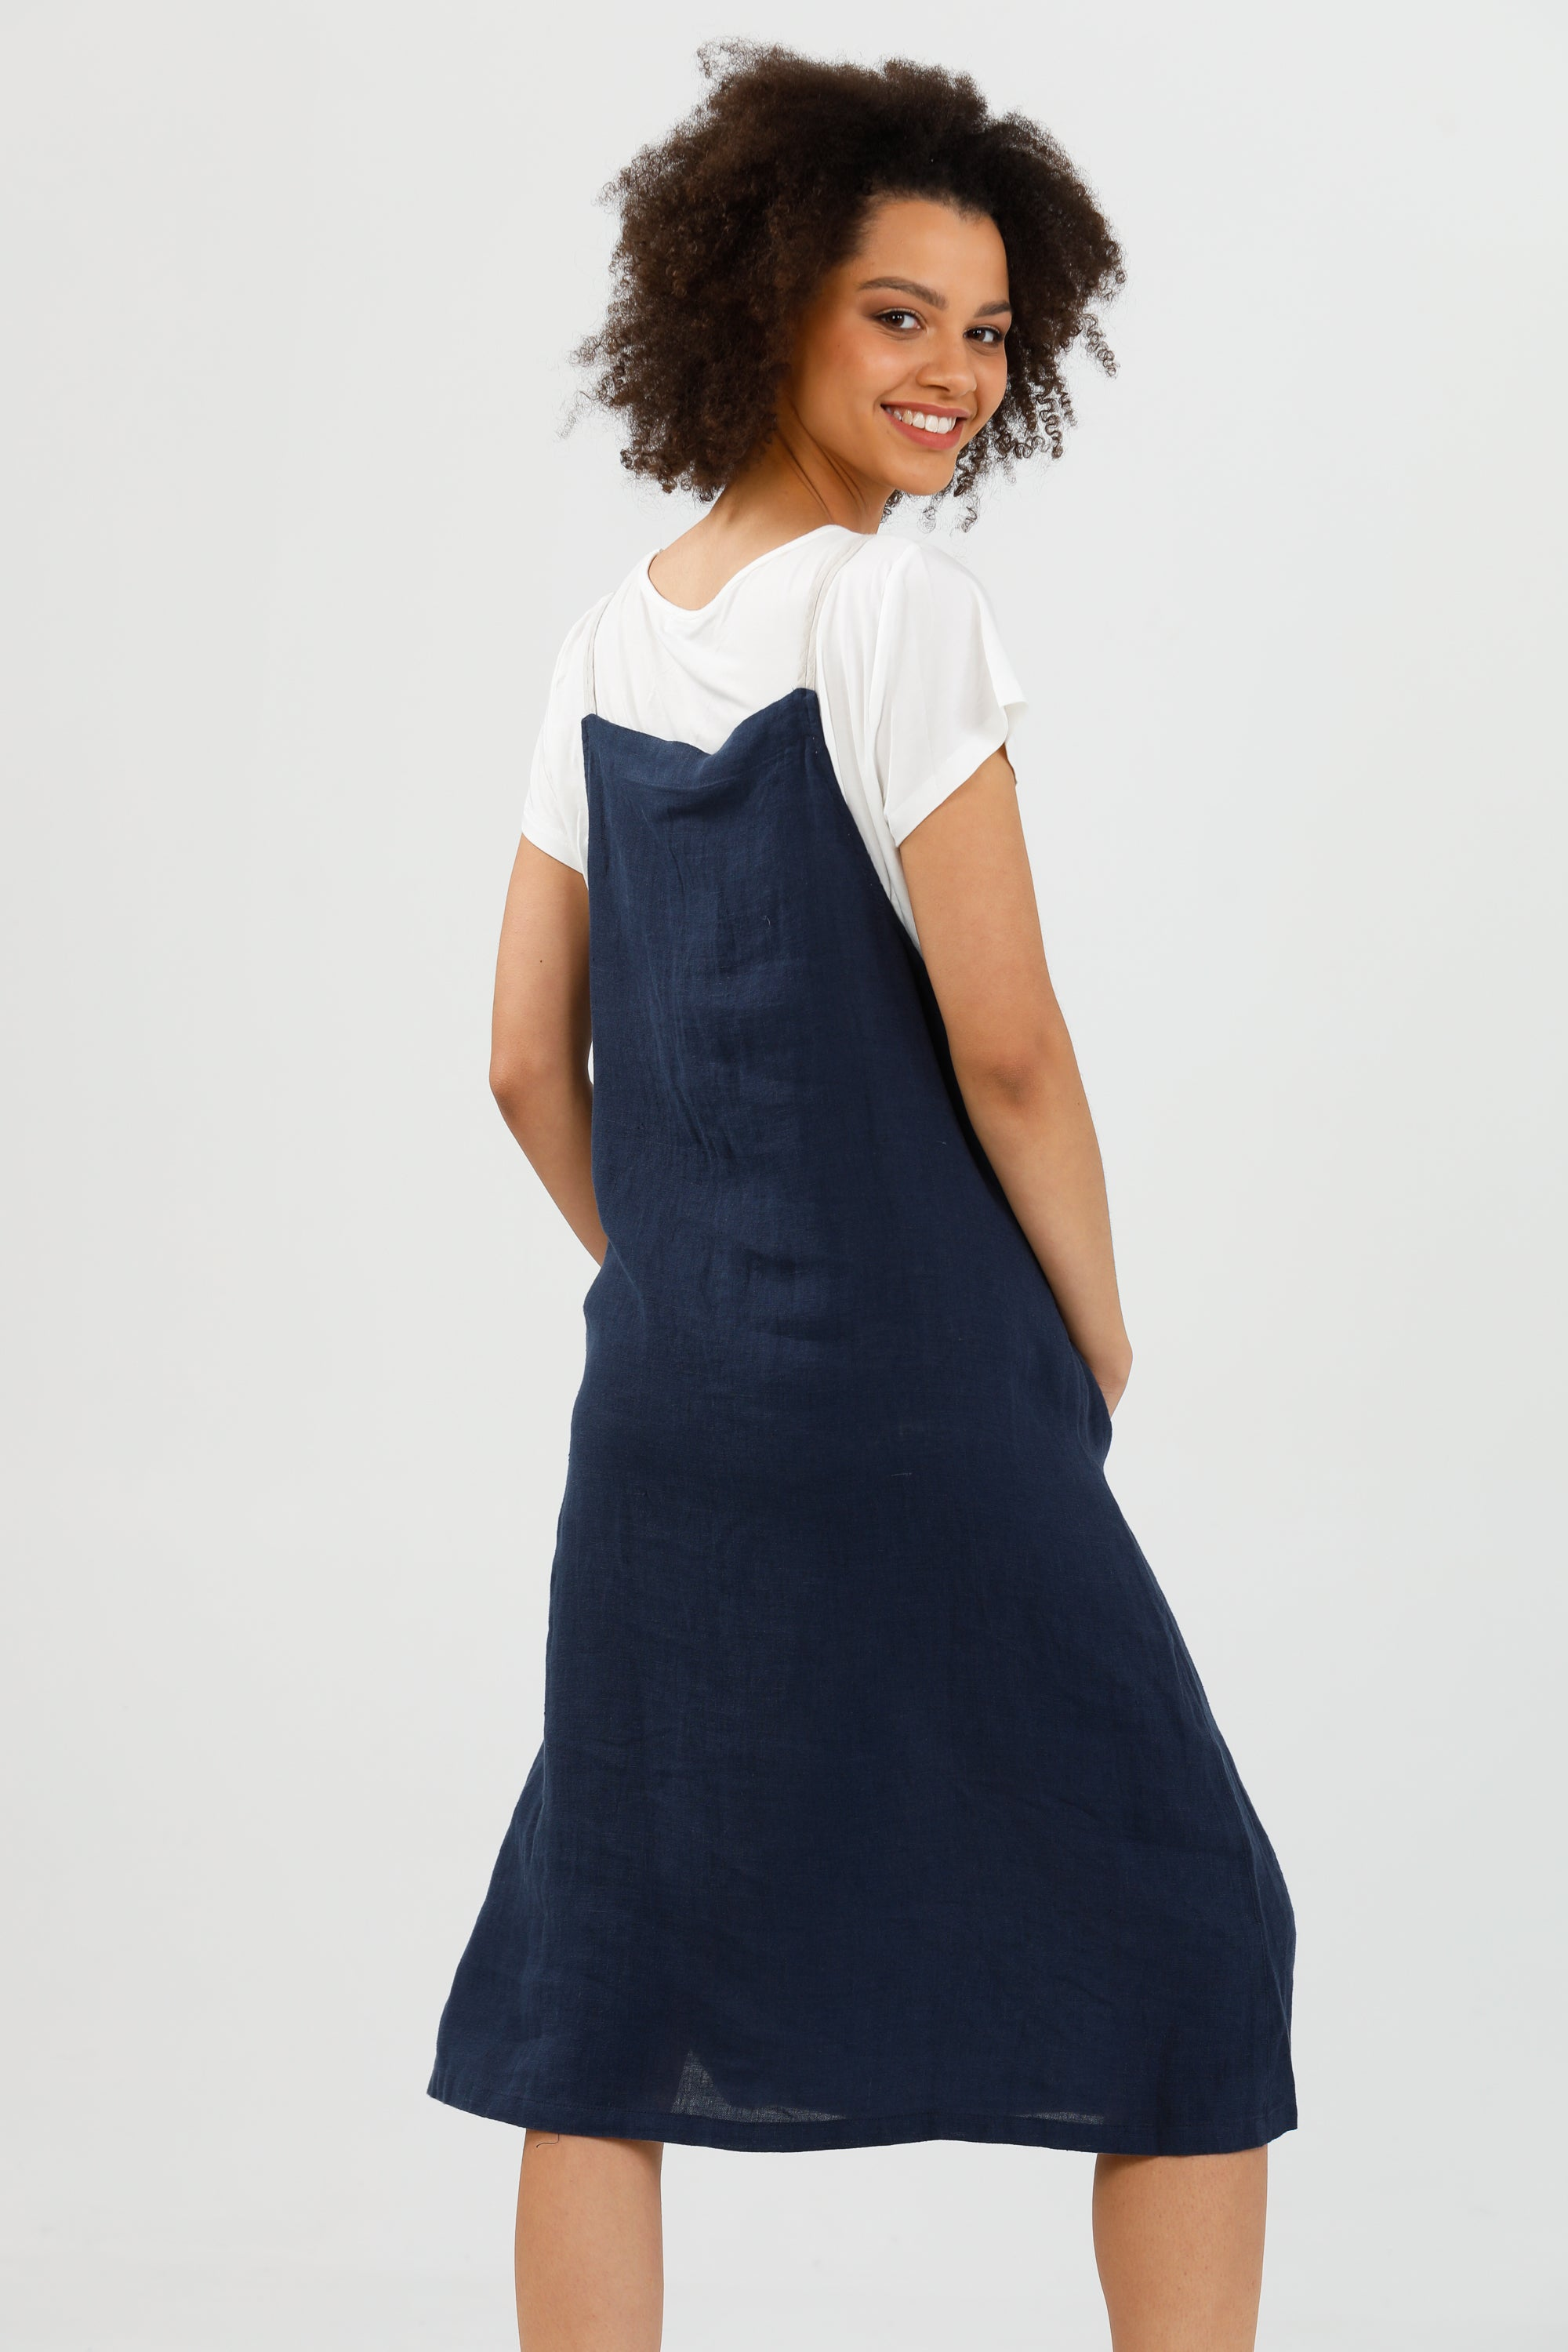 Brave + True Yonder Pinafore